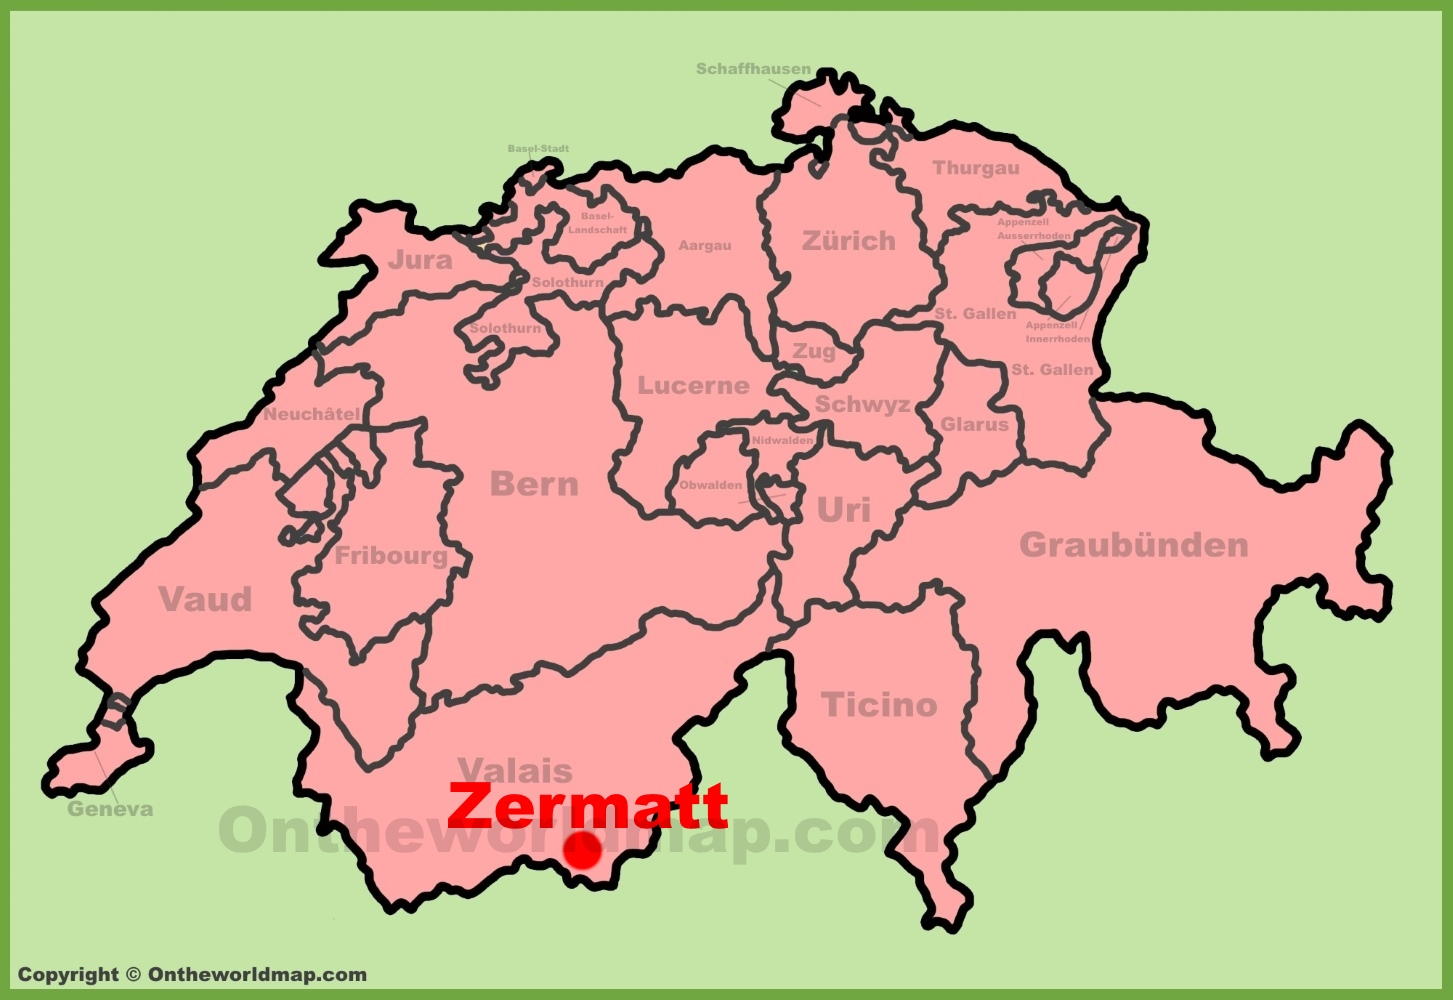 Zermatt location on the Switzerland map